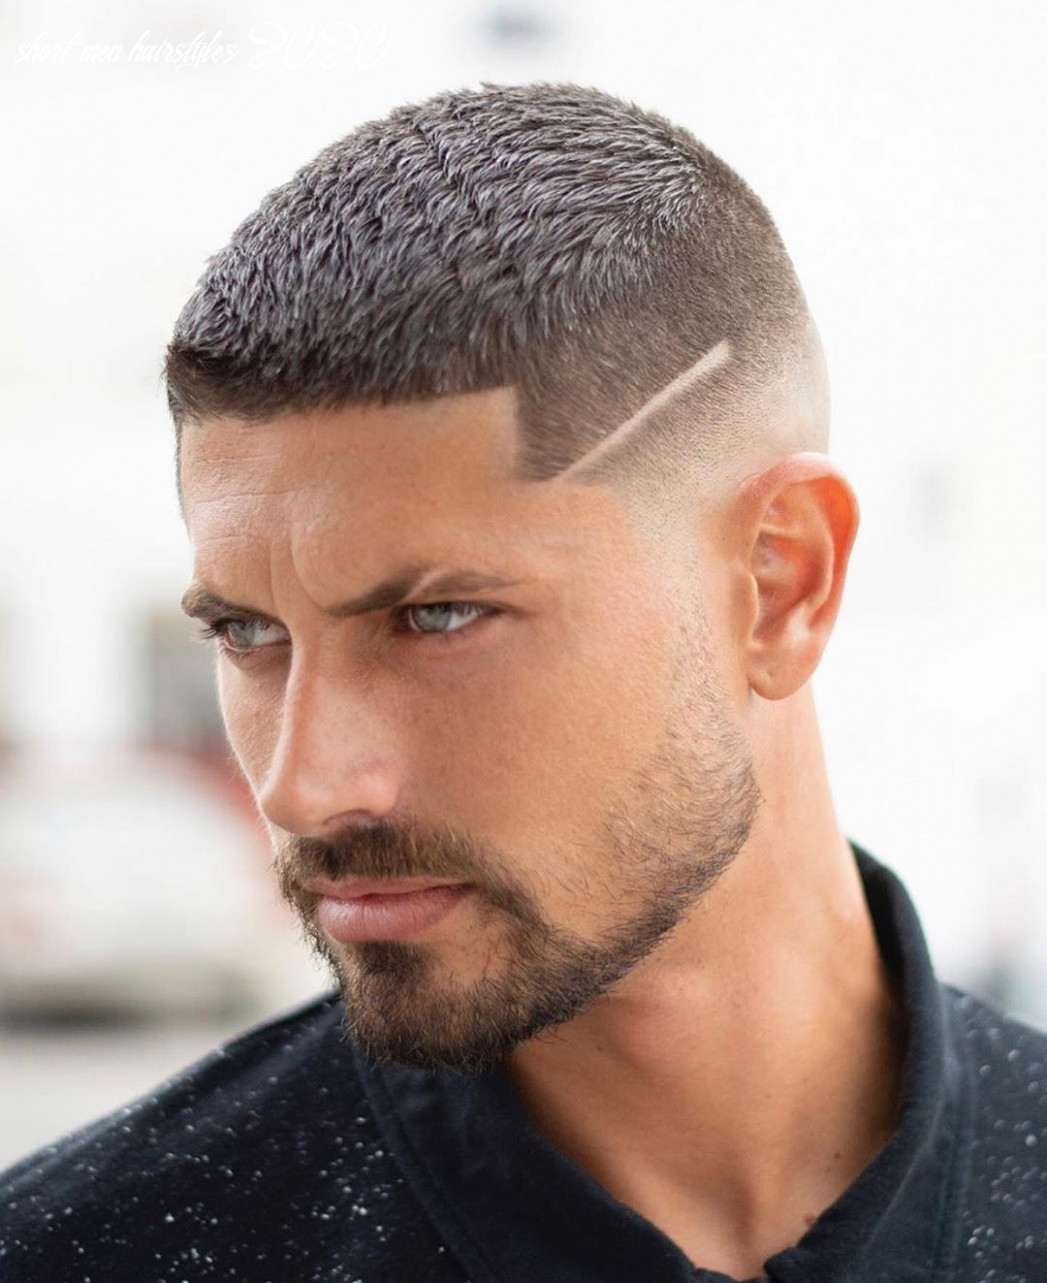 11 Best Short Hairstyles for Men 11 | Mens haircuts short, Mens ...